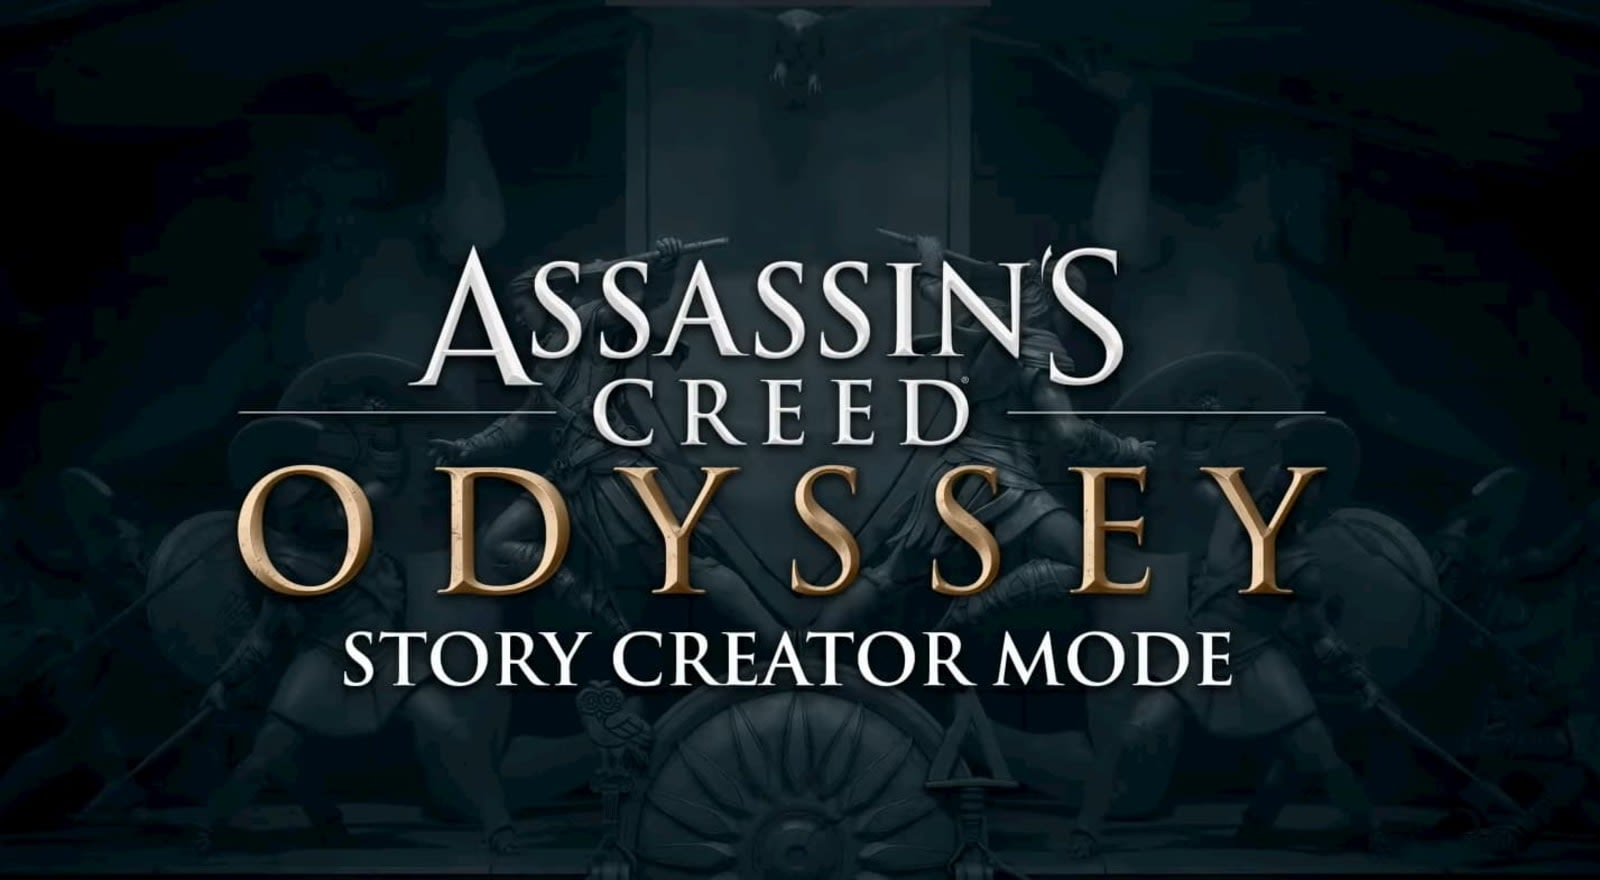 Assassin's Creed Odyssey' adds a story creator mode